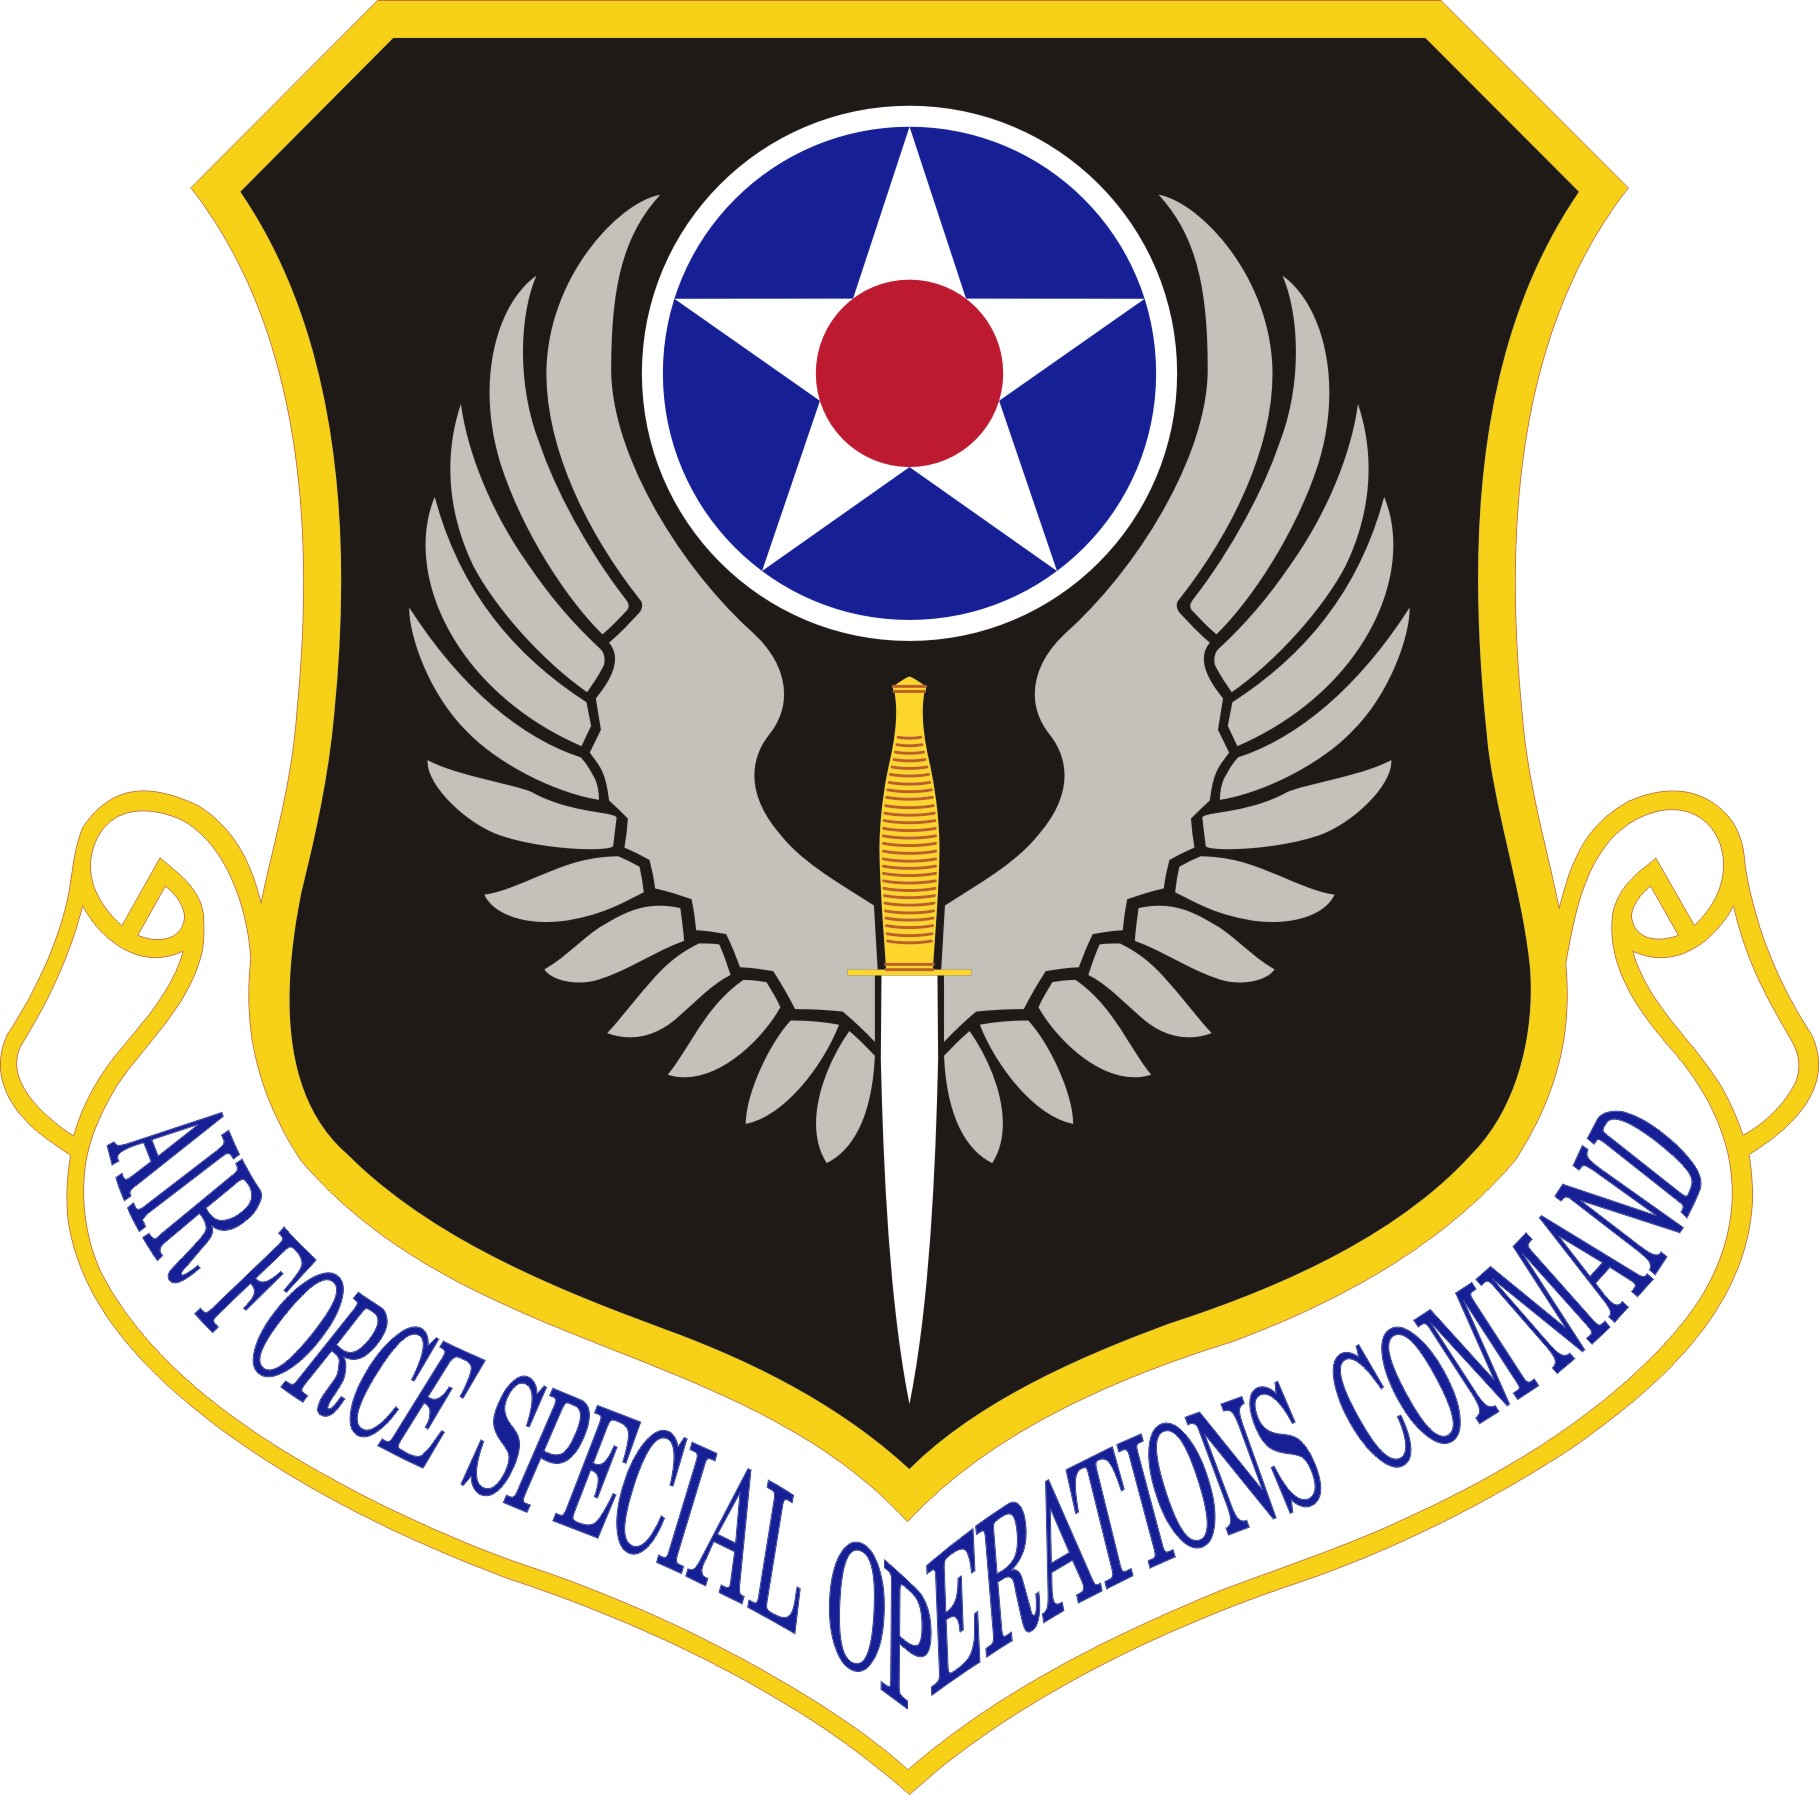 Air Force Special Operations Command (USAF) > Air Force